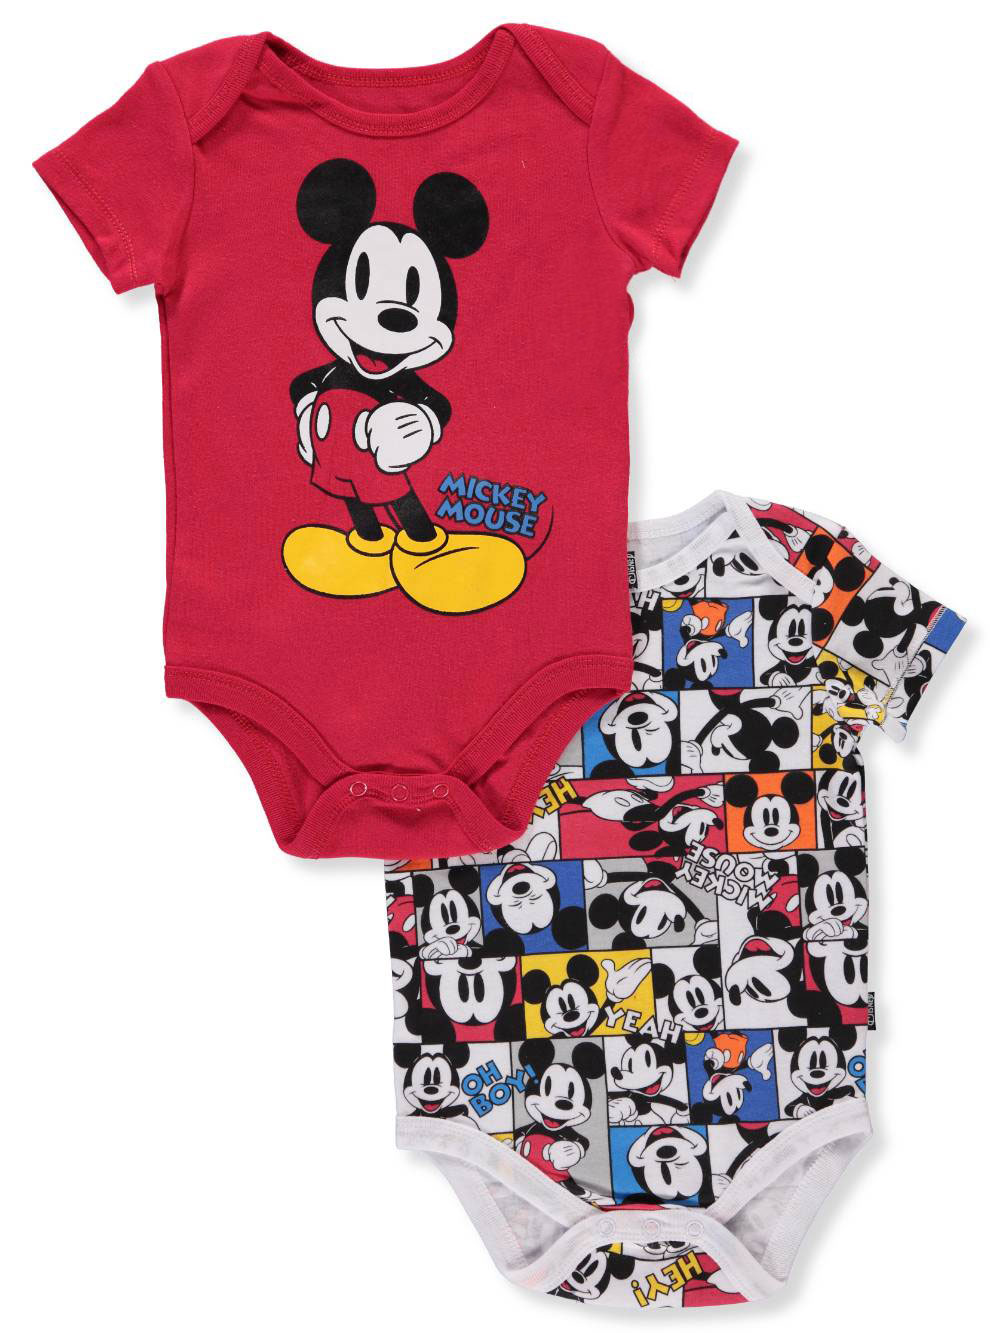 29baffa2ada Mickey Mouse Baby Boys' 2-Pack Bodysuits by Disney in Red/multi from  Cookie's Kids